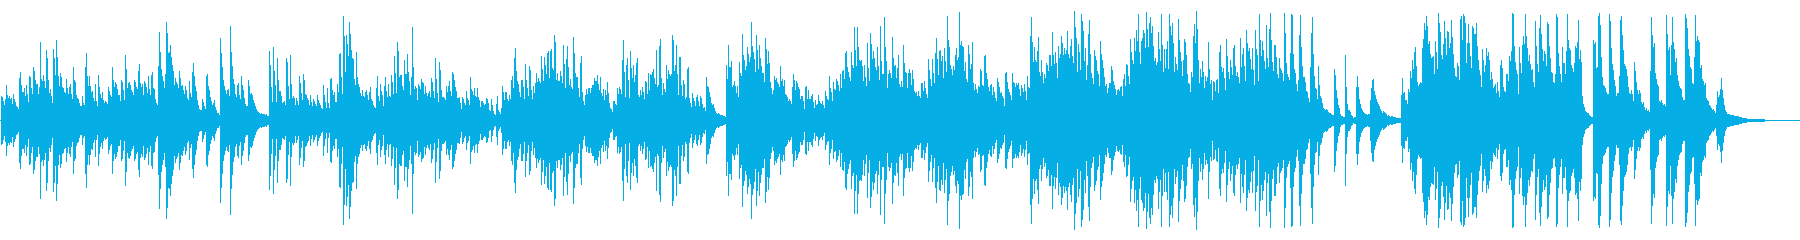 A spacious and moist piano BGM's reproduced waveform